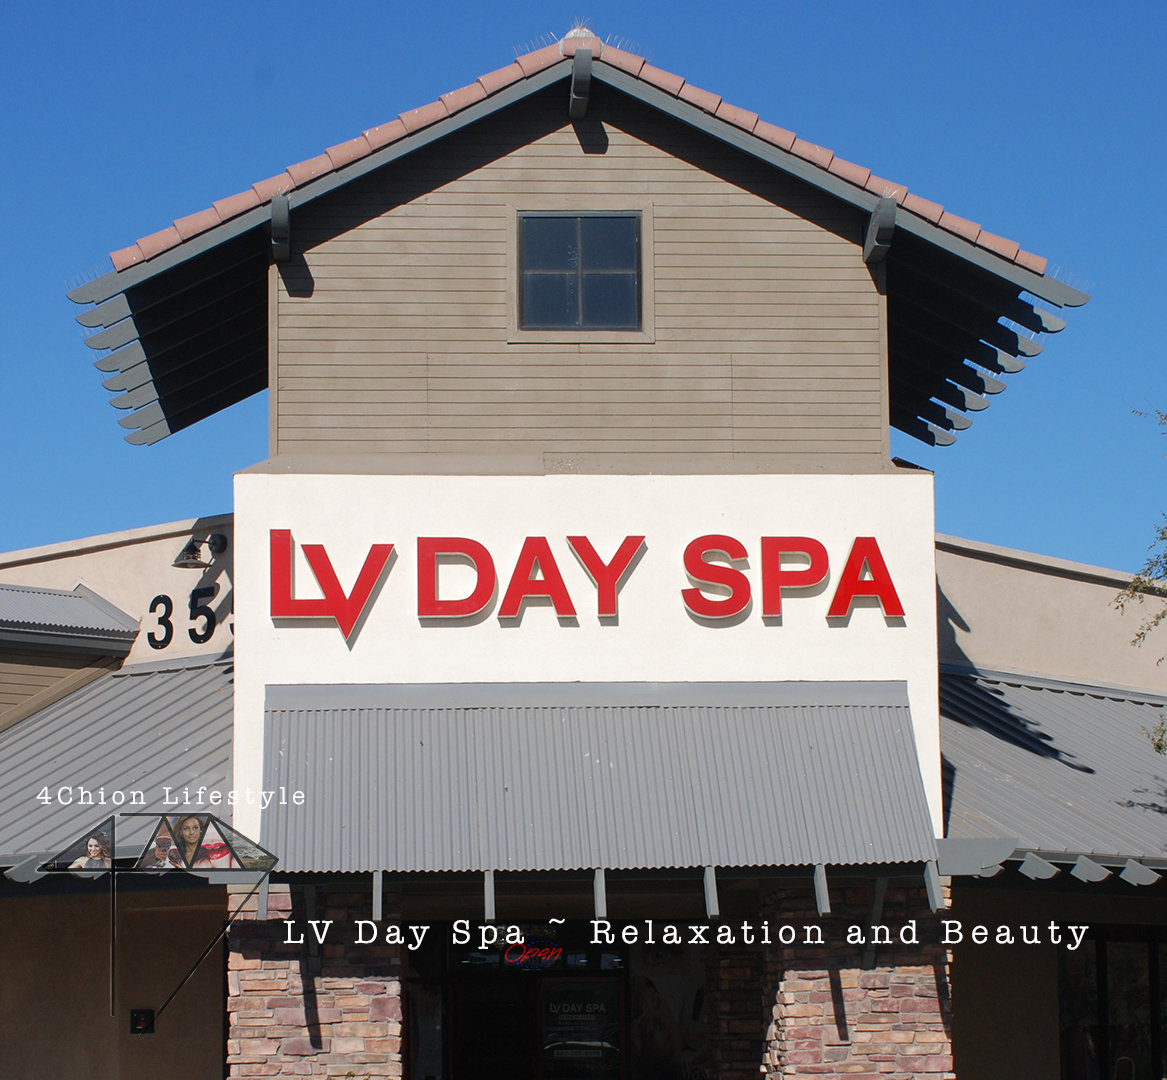 LV Day Spa Nails Feet 4Chion Lifestyle feature image